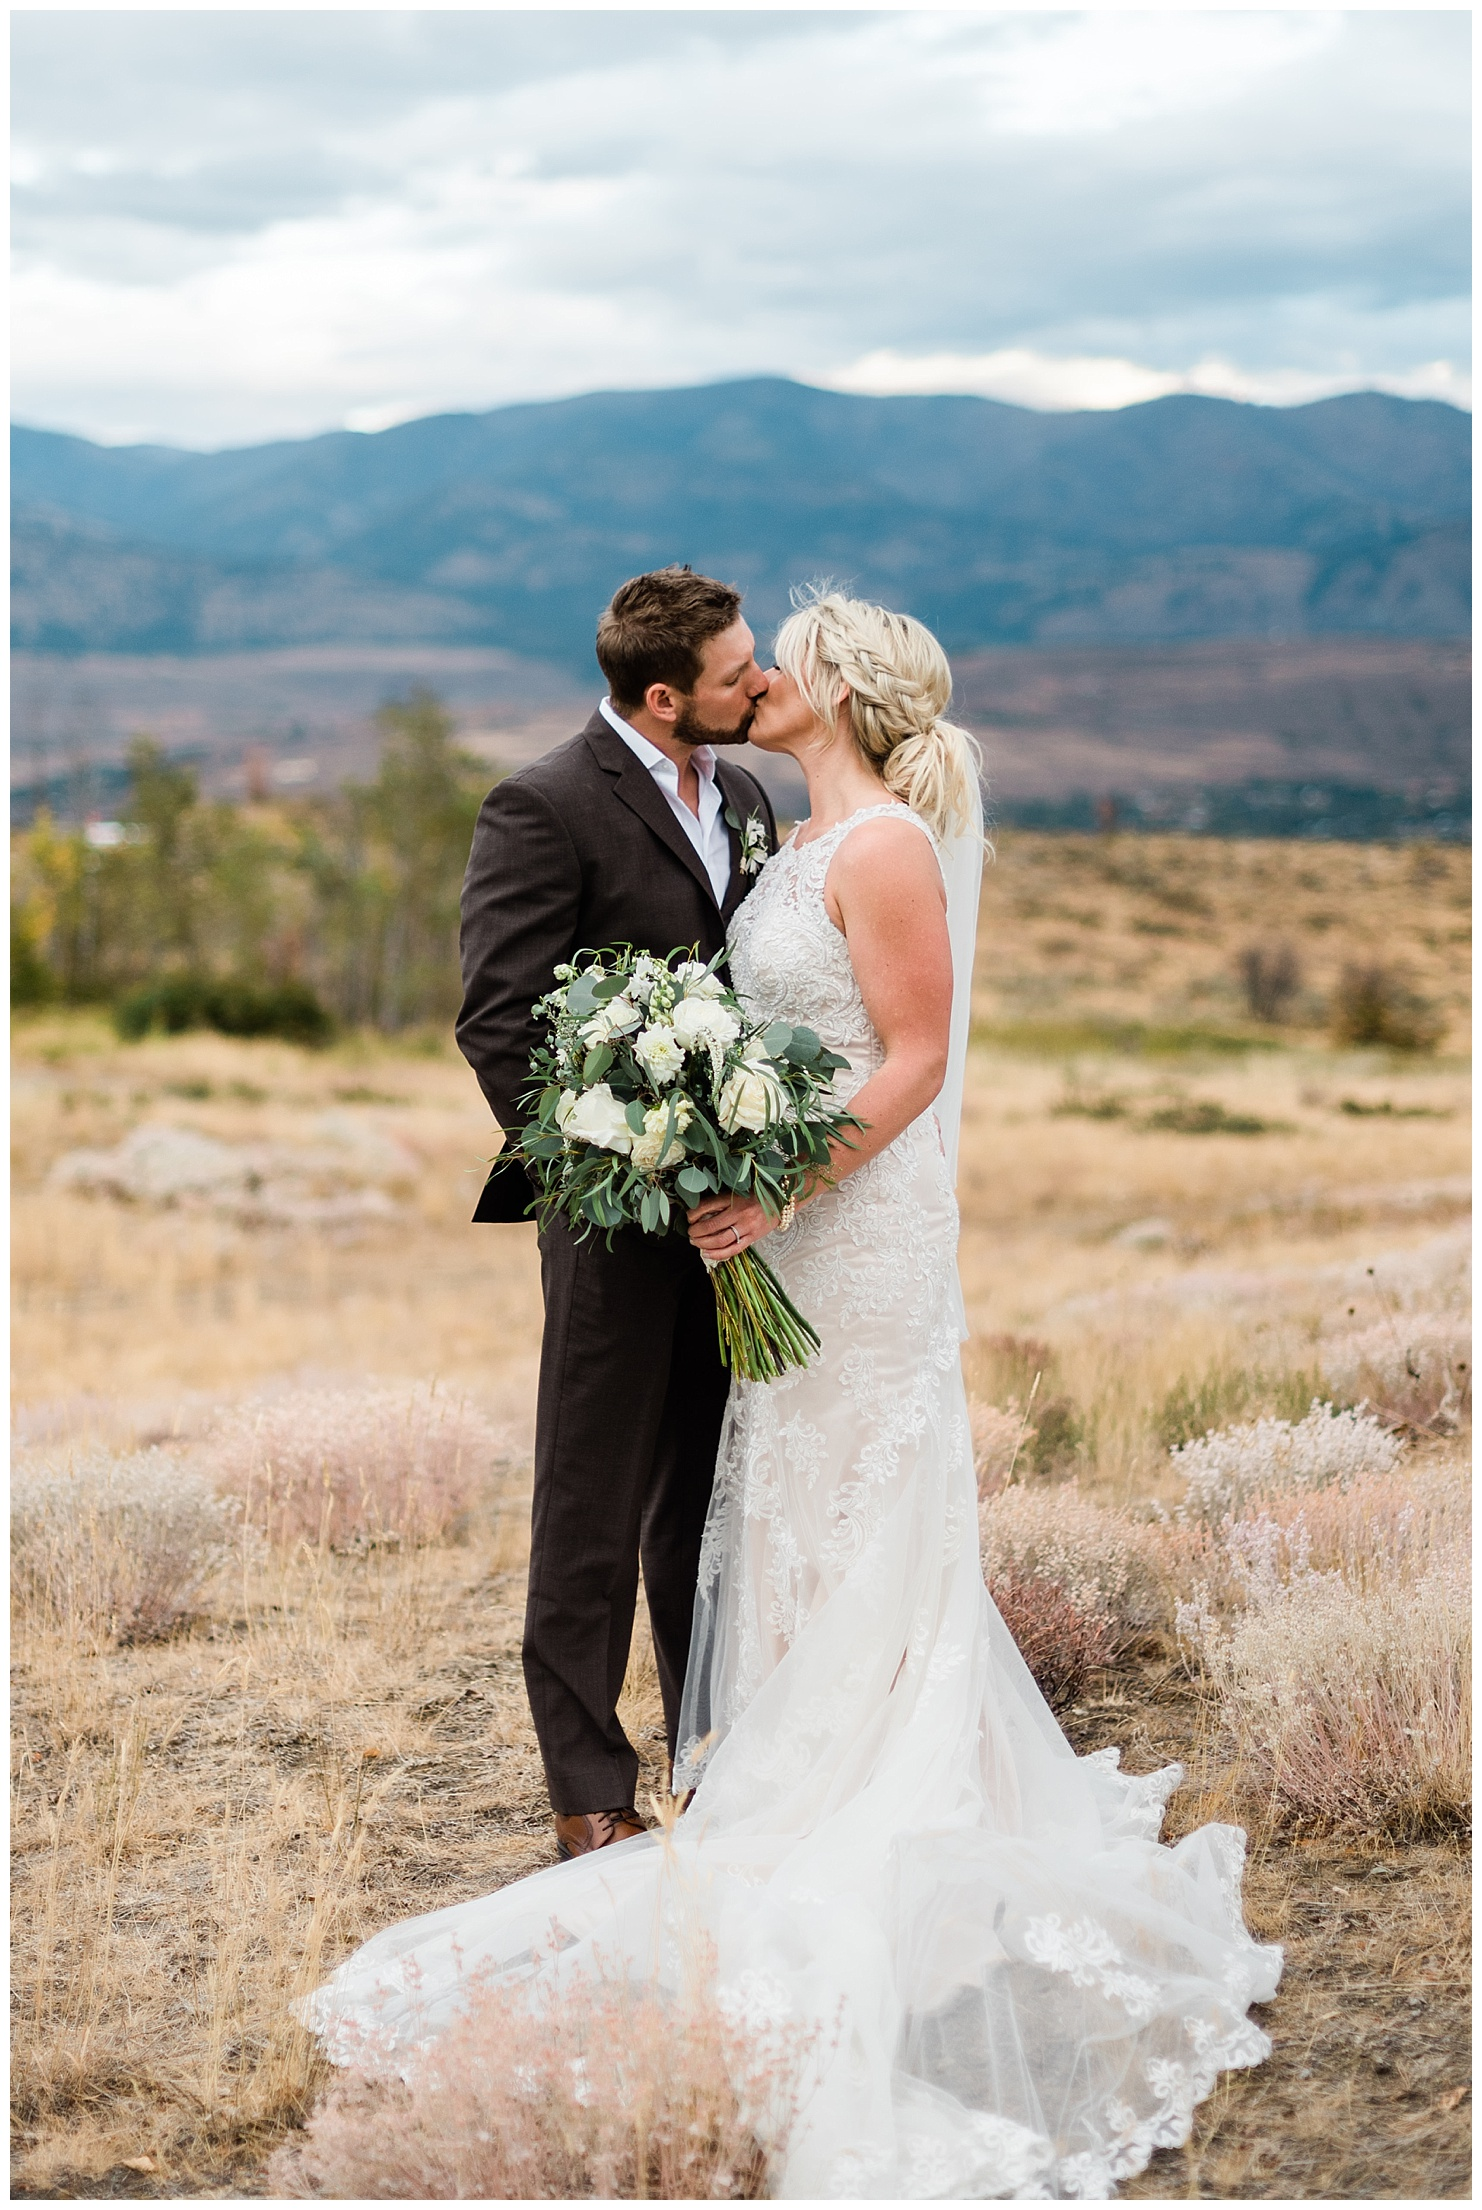 Sun Mountain Lodge Wedding by Forthright Photo, Adventure and Outdoor Wedding Photographers